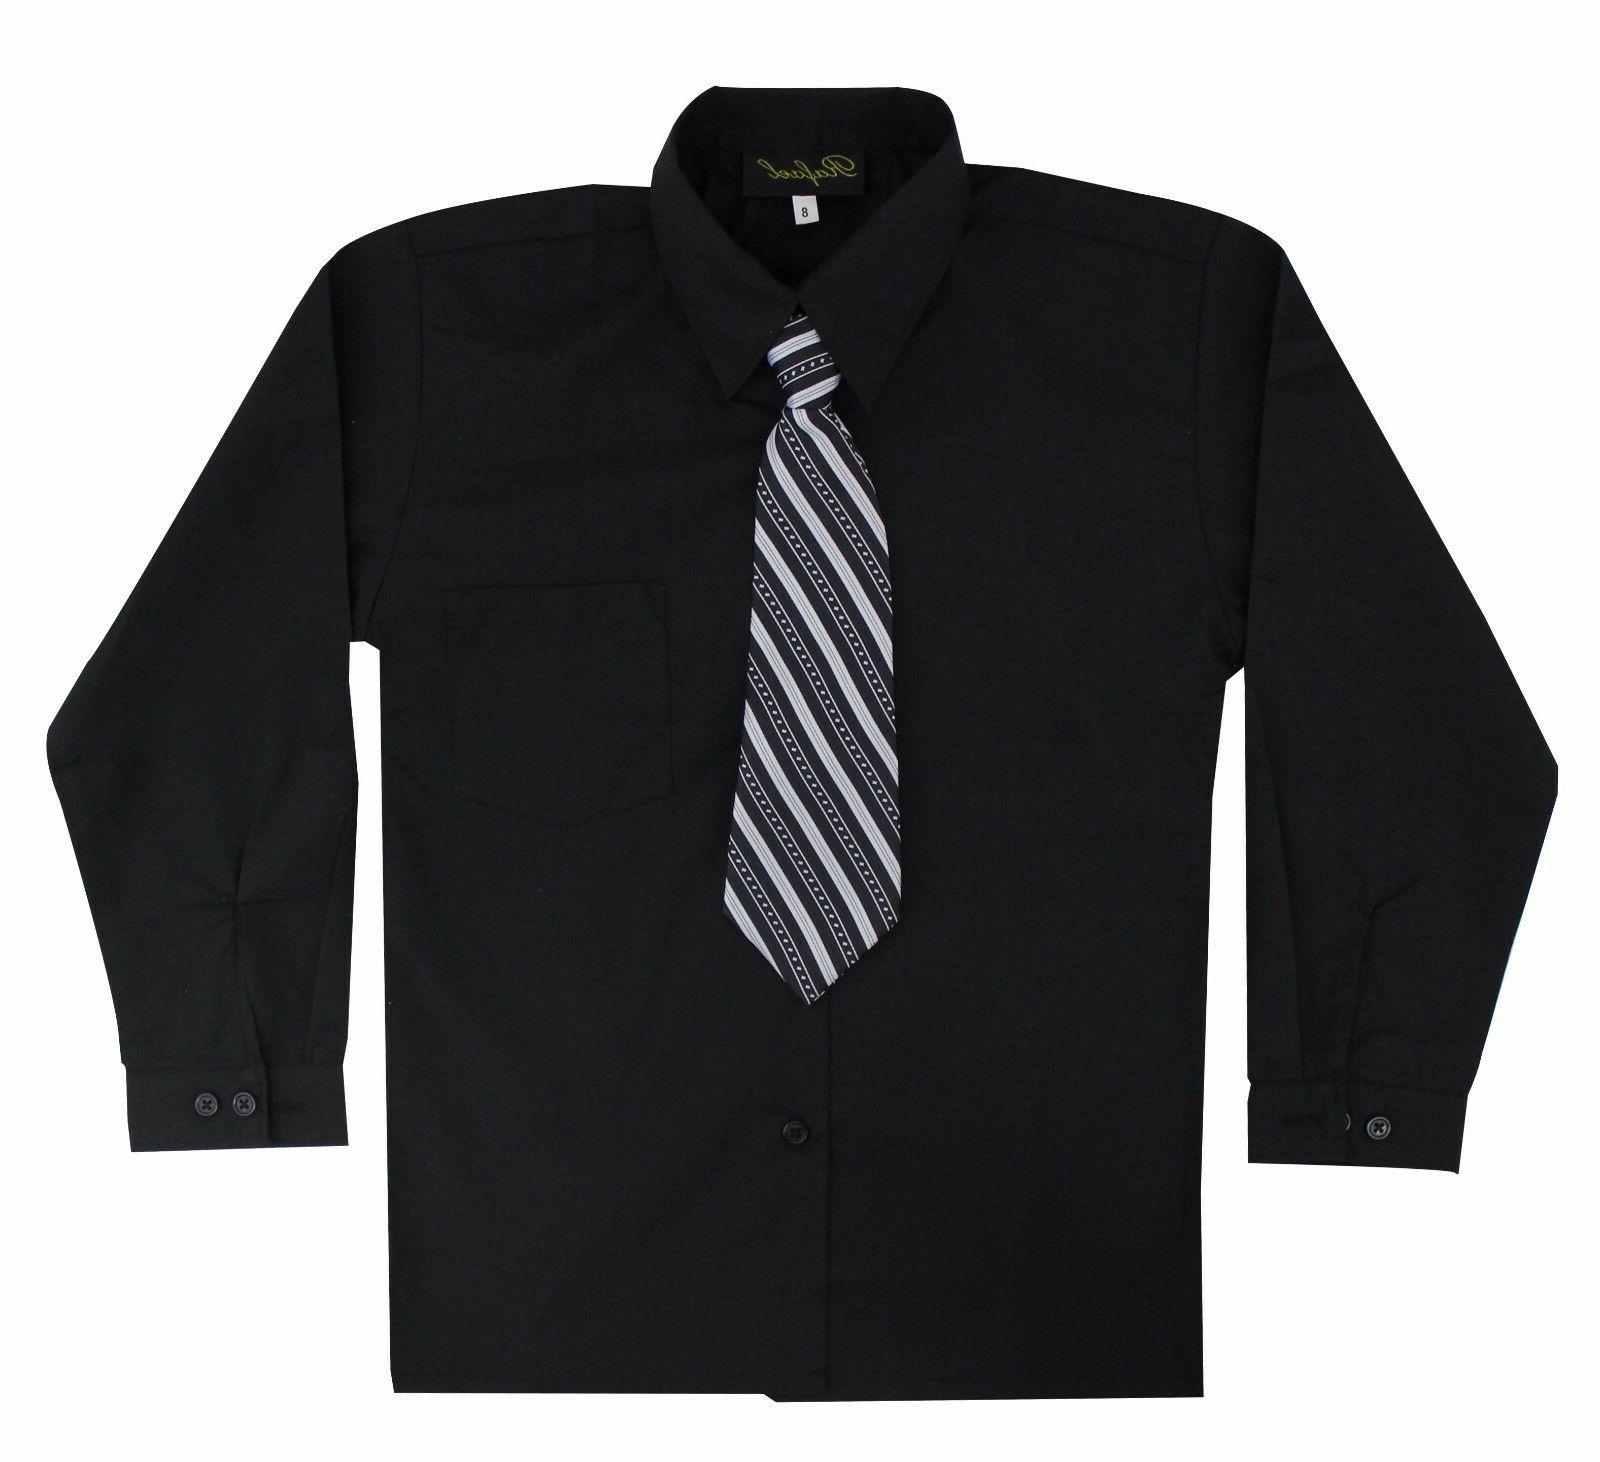 Kids Toddlers Sleeve Shirt Tie Set Size to